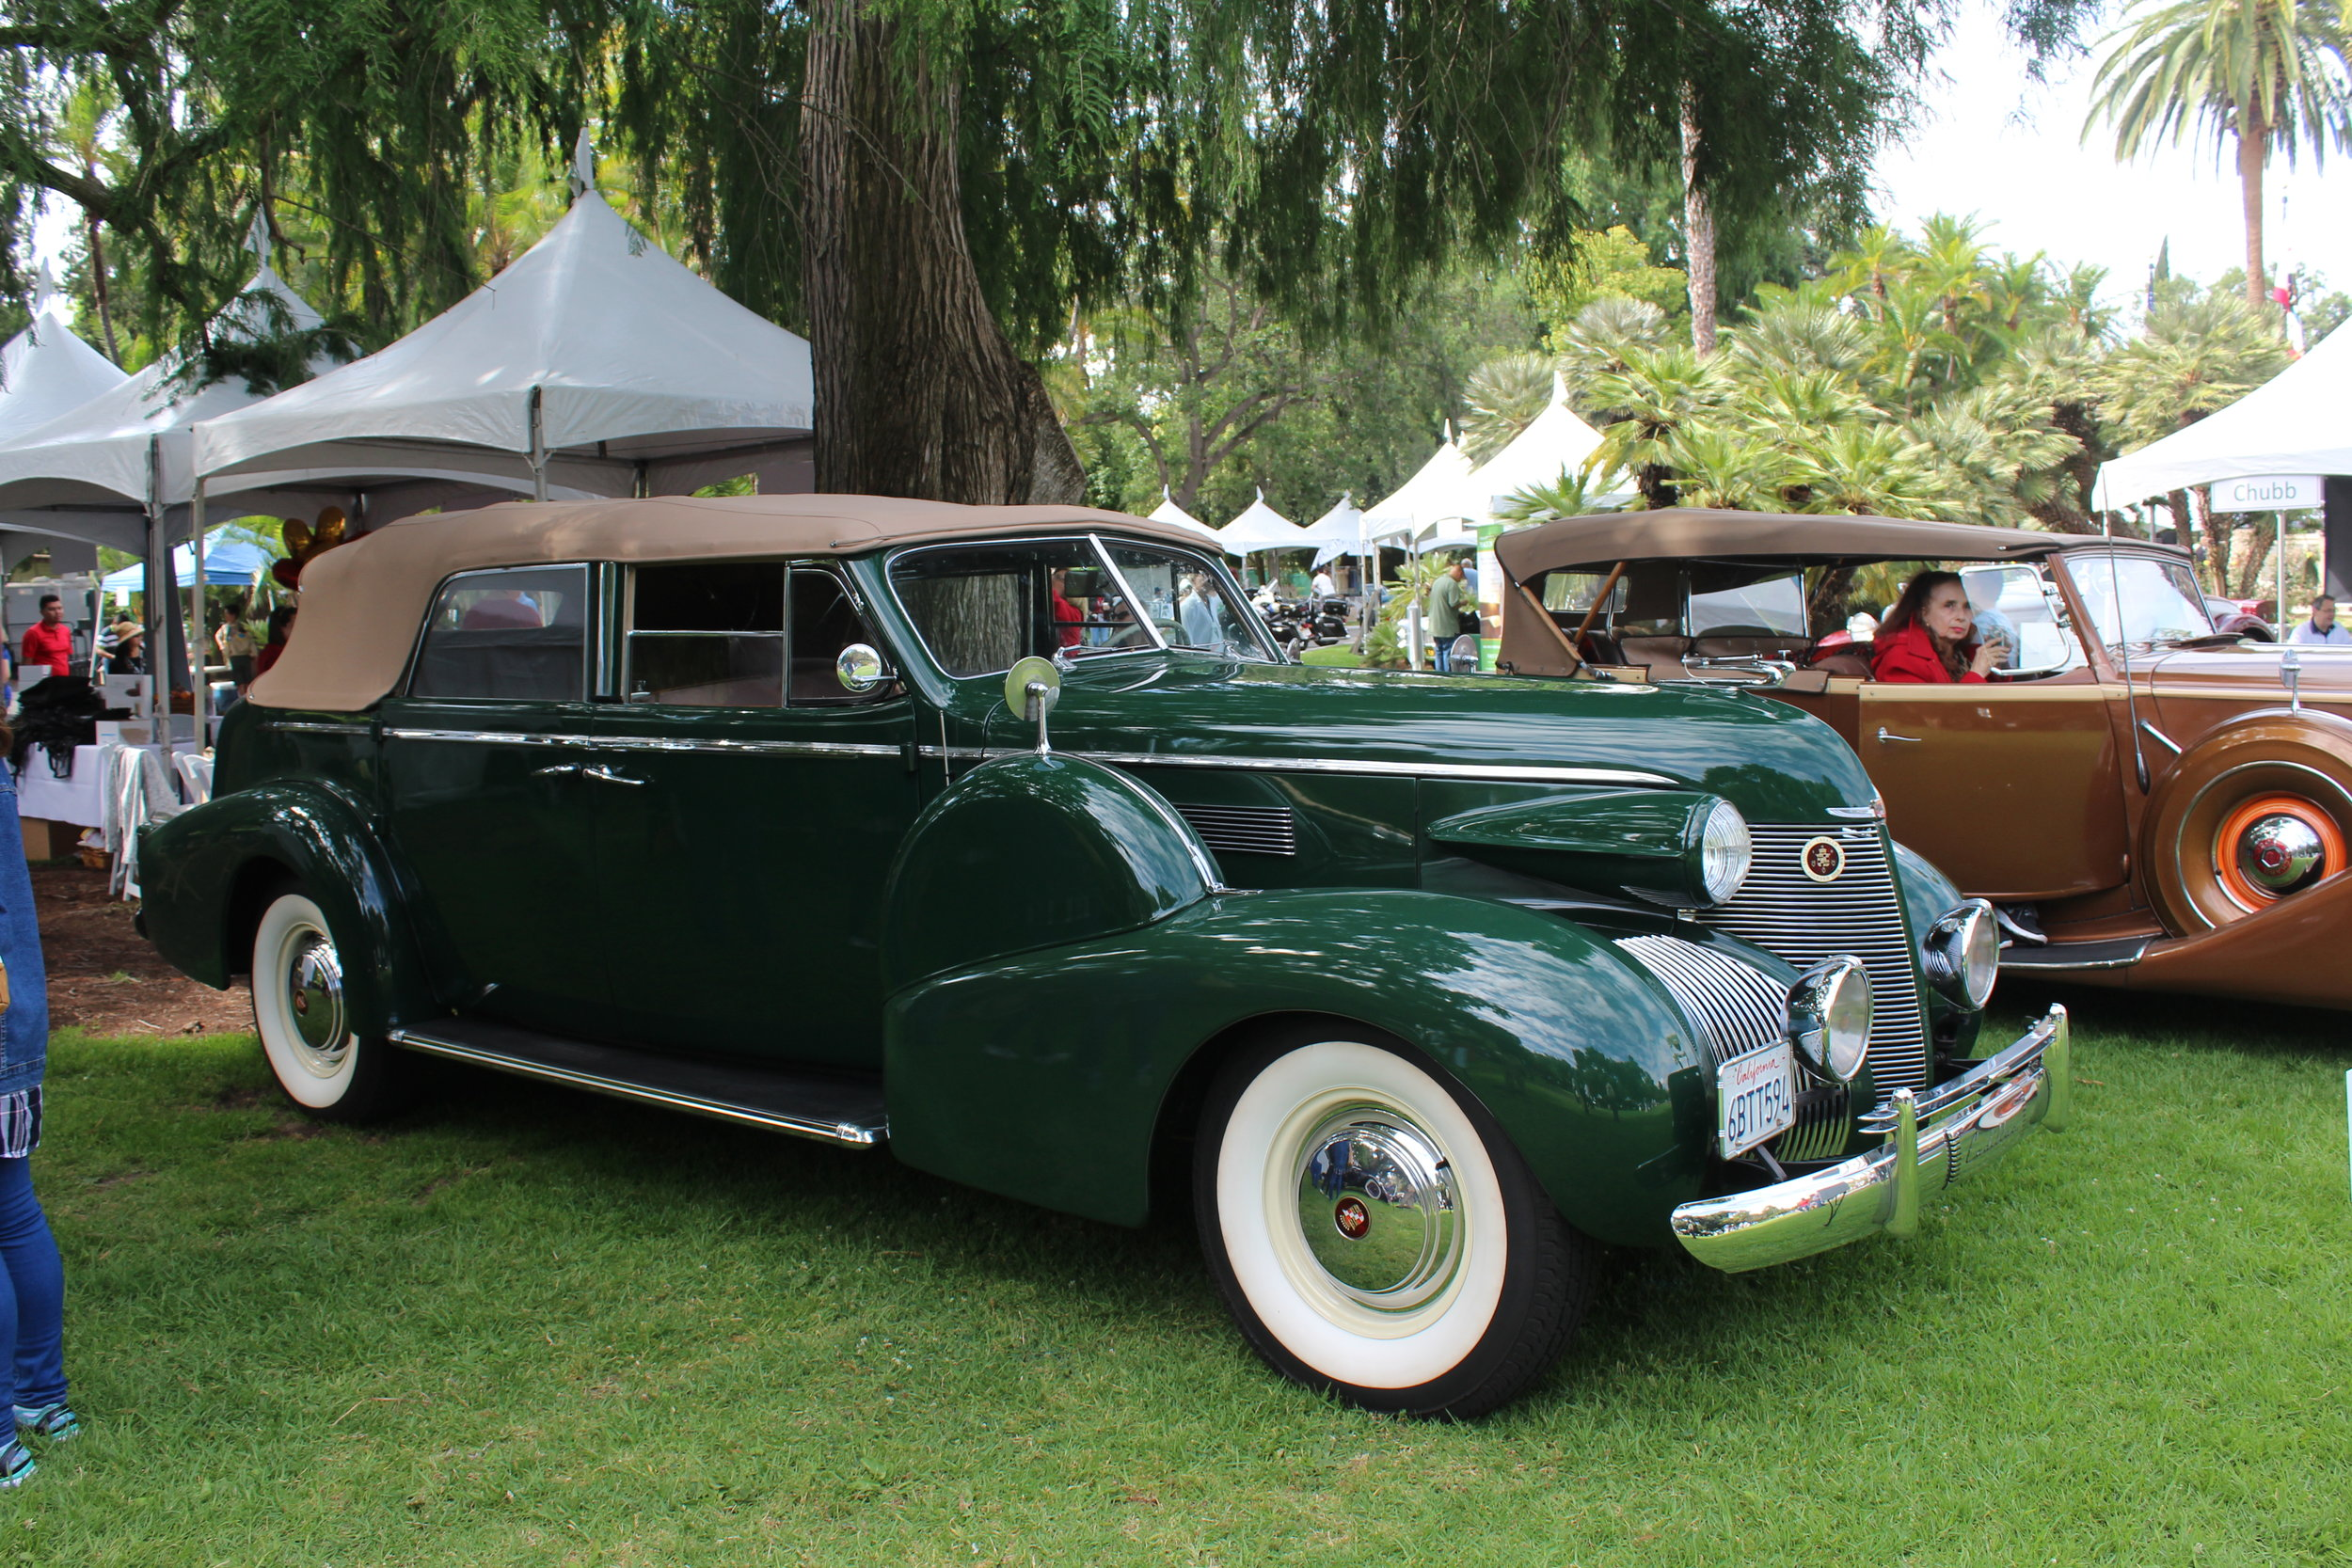 1939 Cadillac 75 Convertible Sedan, Fleetwood Bill Kling.JPG